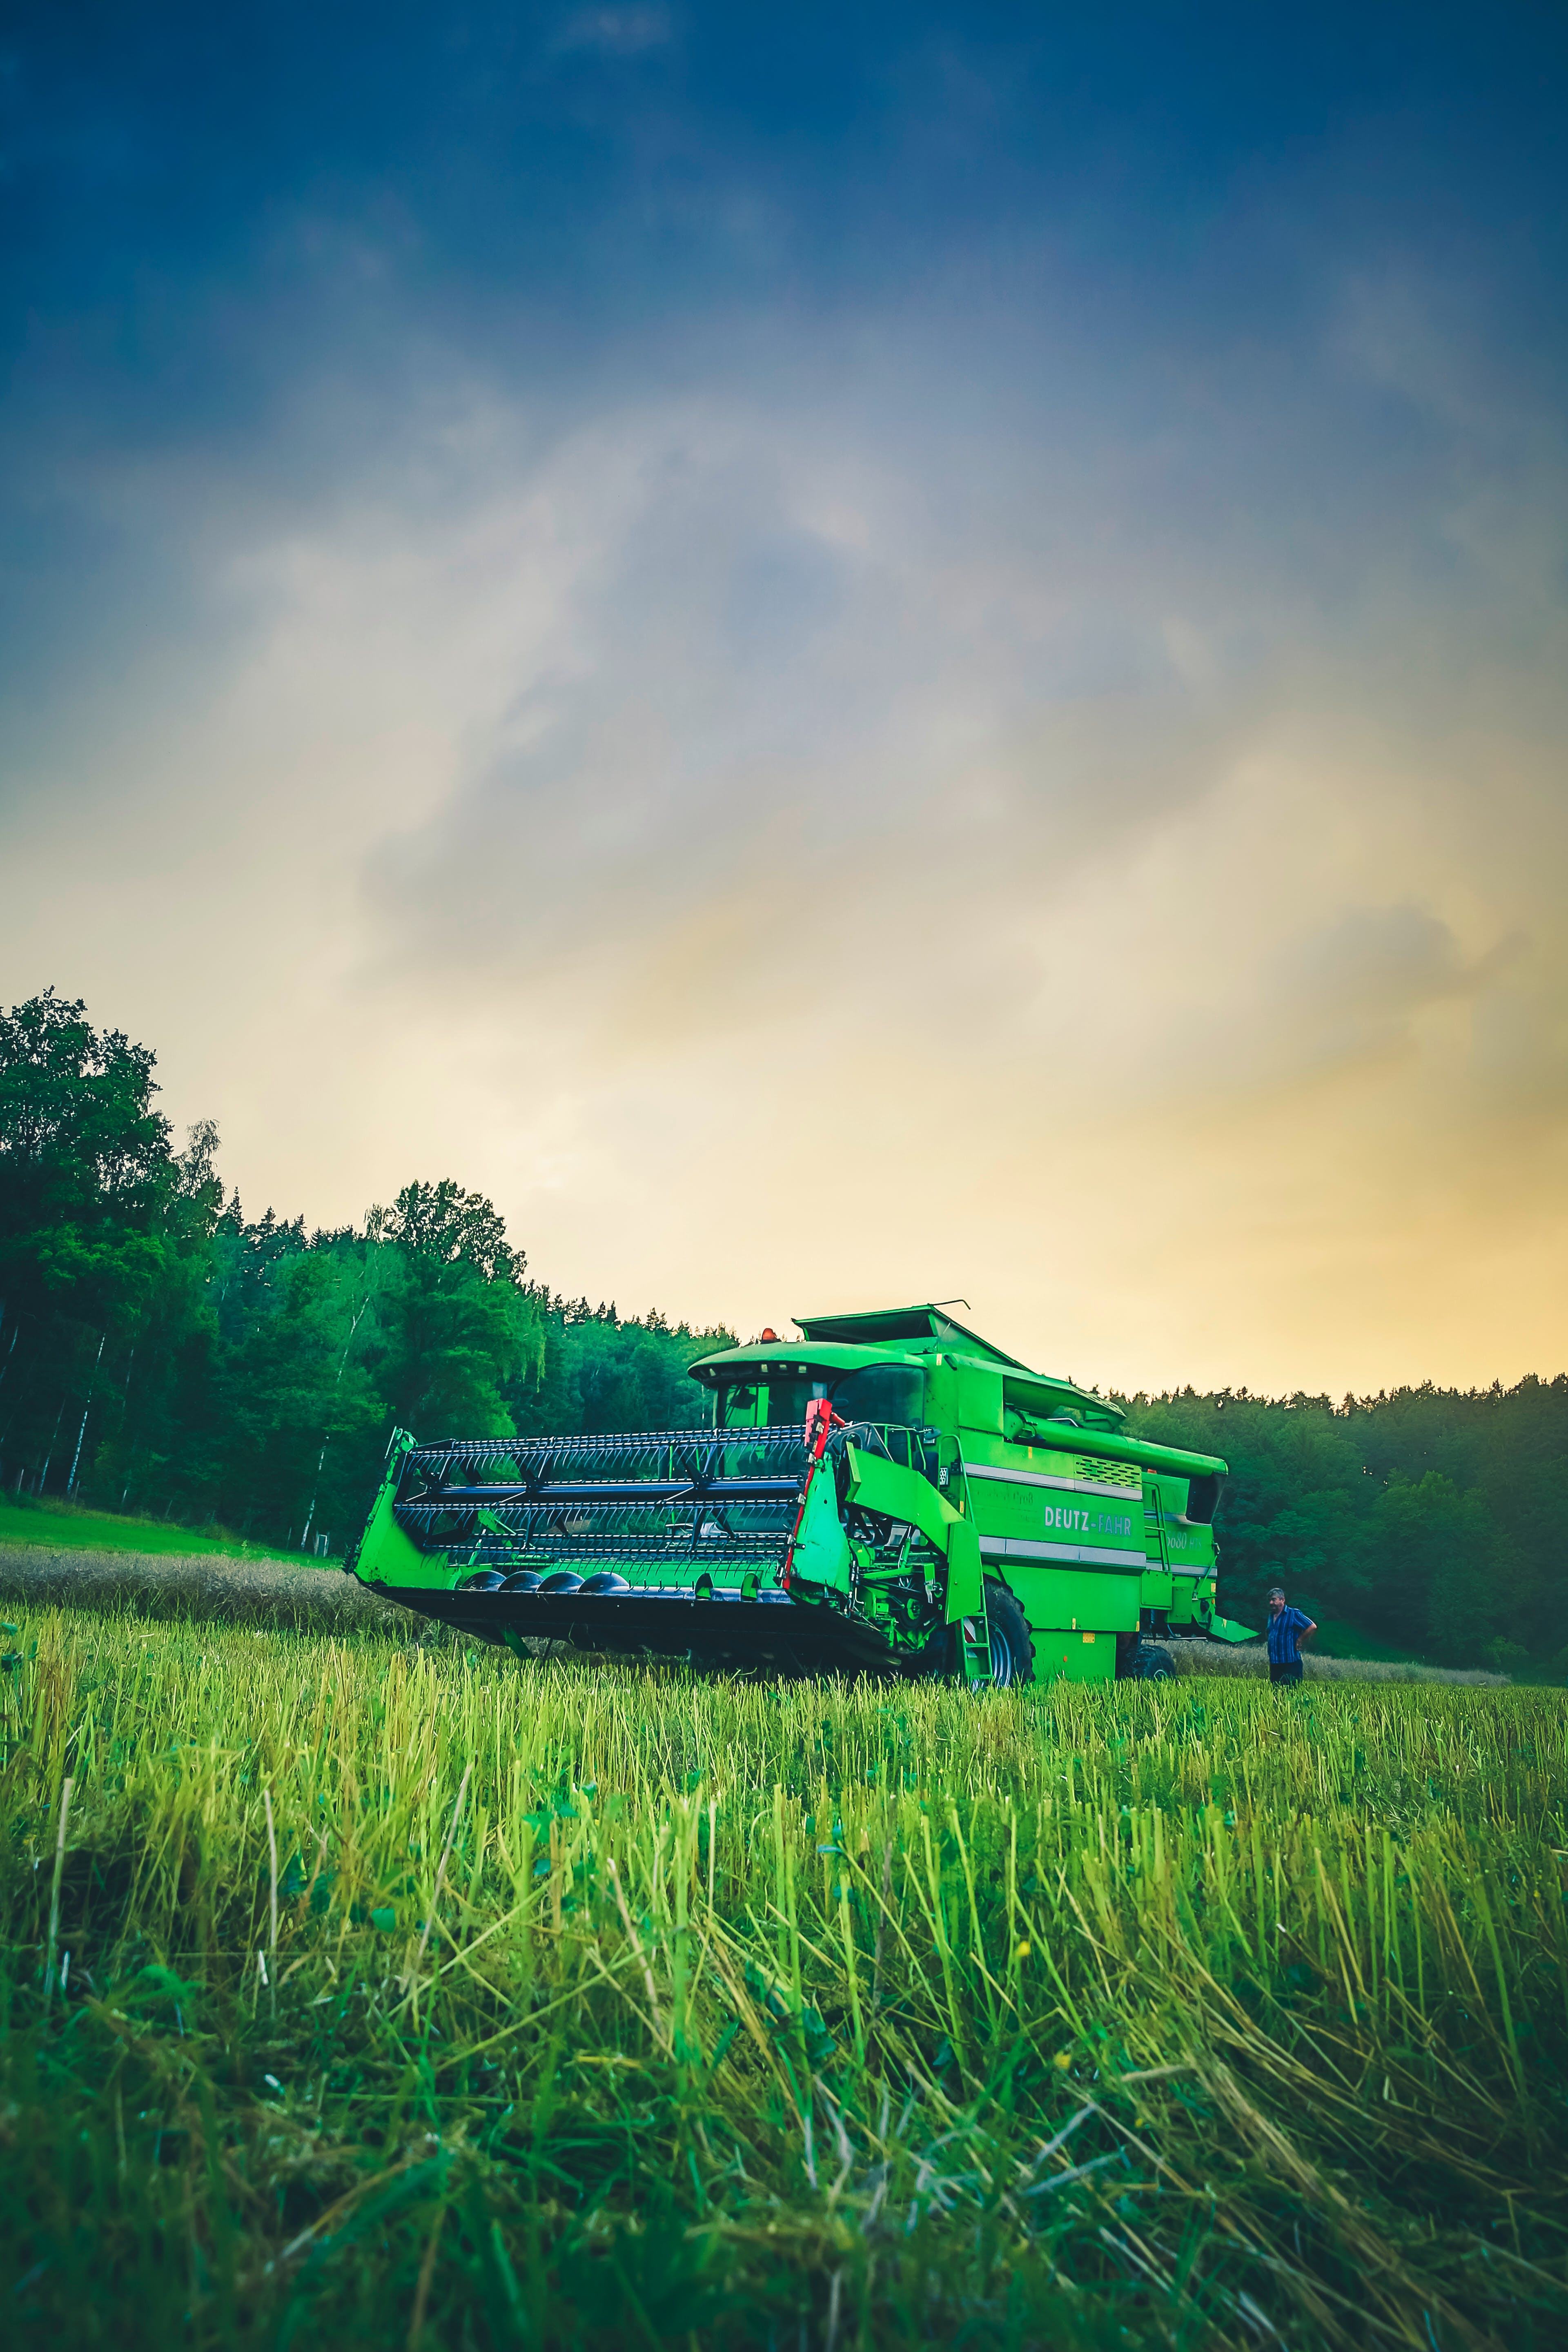 Green Harvester on Green Rice Field Under Blue and White Sky during Daytime